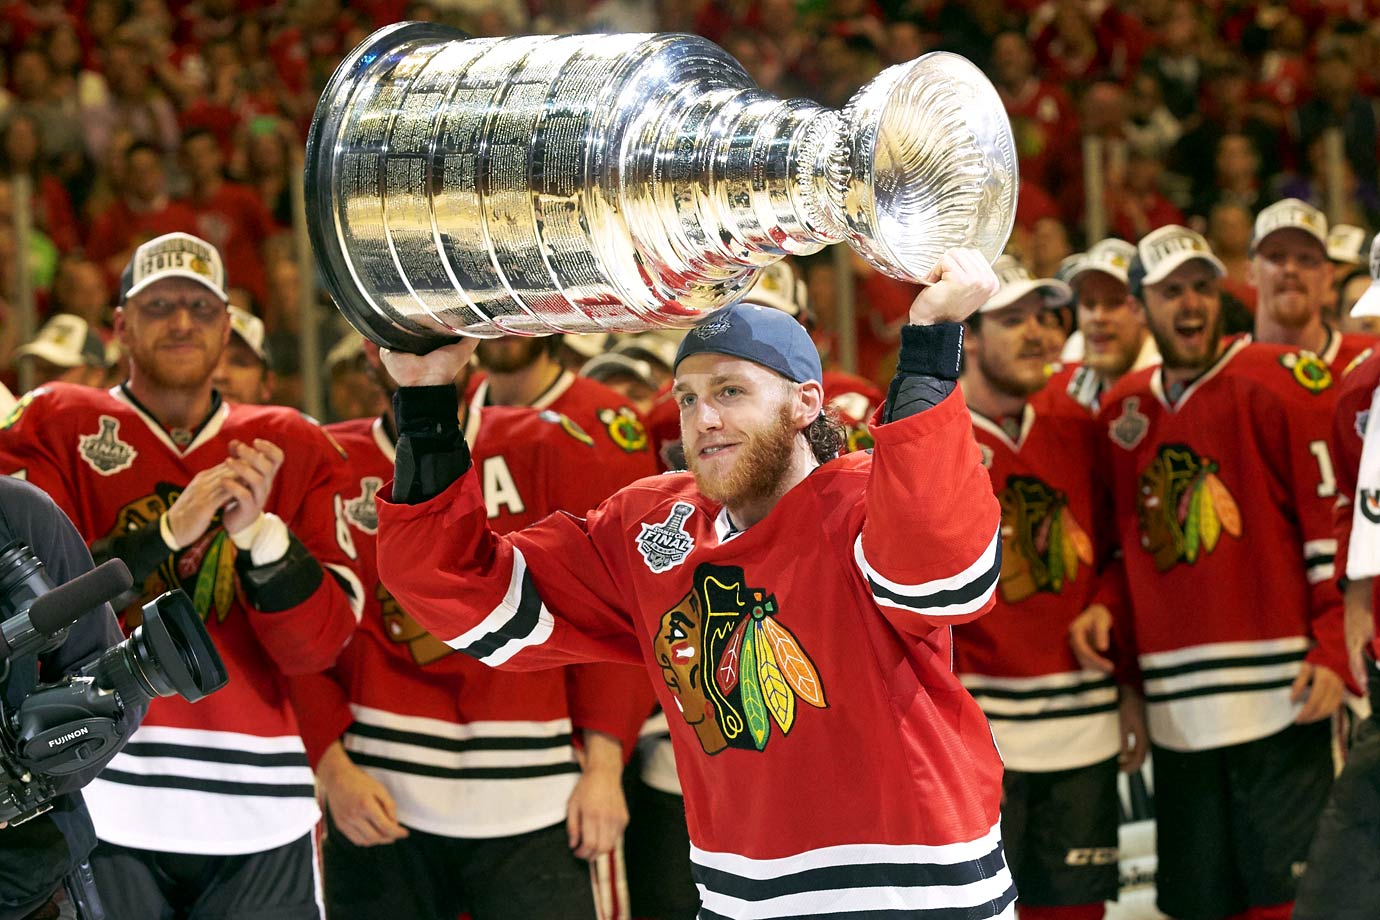 <p>One of the Blackhawks' talented young pillars, along with center Jonathan Toews, Kane won the Calder Trophy as Rookie of the Year in 2007-08. Kane finished the 2009-10 NHL season with a career-high 30 goals and 58 assists, and his 10 goals and 28 points in 22 playoff games were an integral part of the Blackhawks winning their first Stanley Cup in 49 years. In 2013, he won the Conn Smythe Trophy as playoff MVP as the Hawks won the Cup again. Kane won his third Cup in 2014-15. — Notable picks: No 2: James van Riemsdyk, LW, Philadelphia Flyers | No. 7: Jakub Voracek, RW, Columbus Blue Jackets| No. 9: Logan Couture, C, San Jose Sharks | No. 22: Max Pacioretty, LW, Montreal Canadiens | No. 43 P.K. Subban, D, Montreal Canadiens | No. 129: Jamie Benn, LW, Dallas Stars</p>